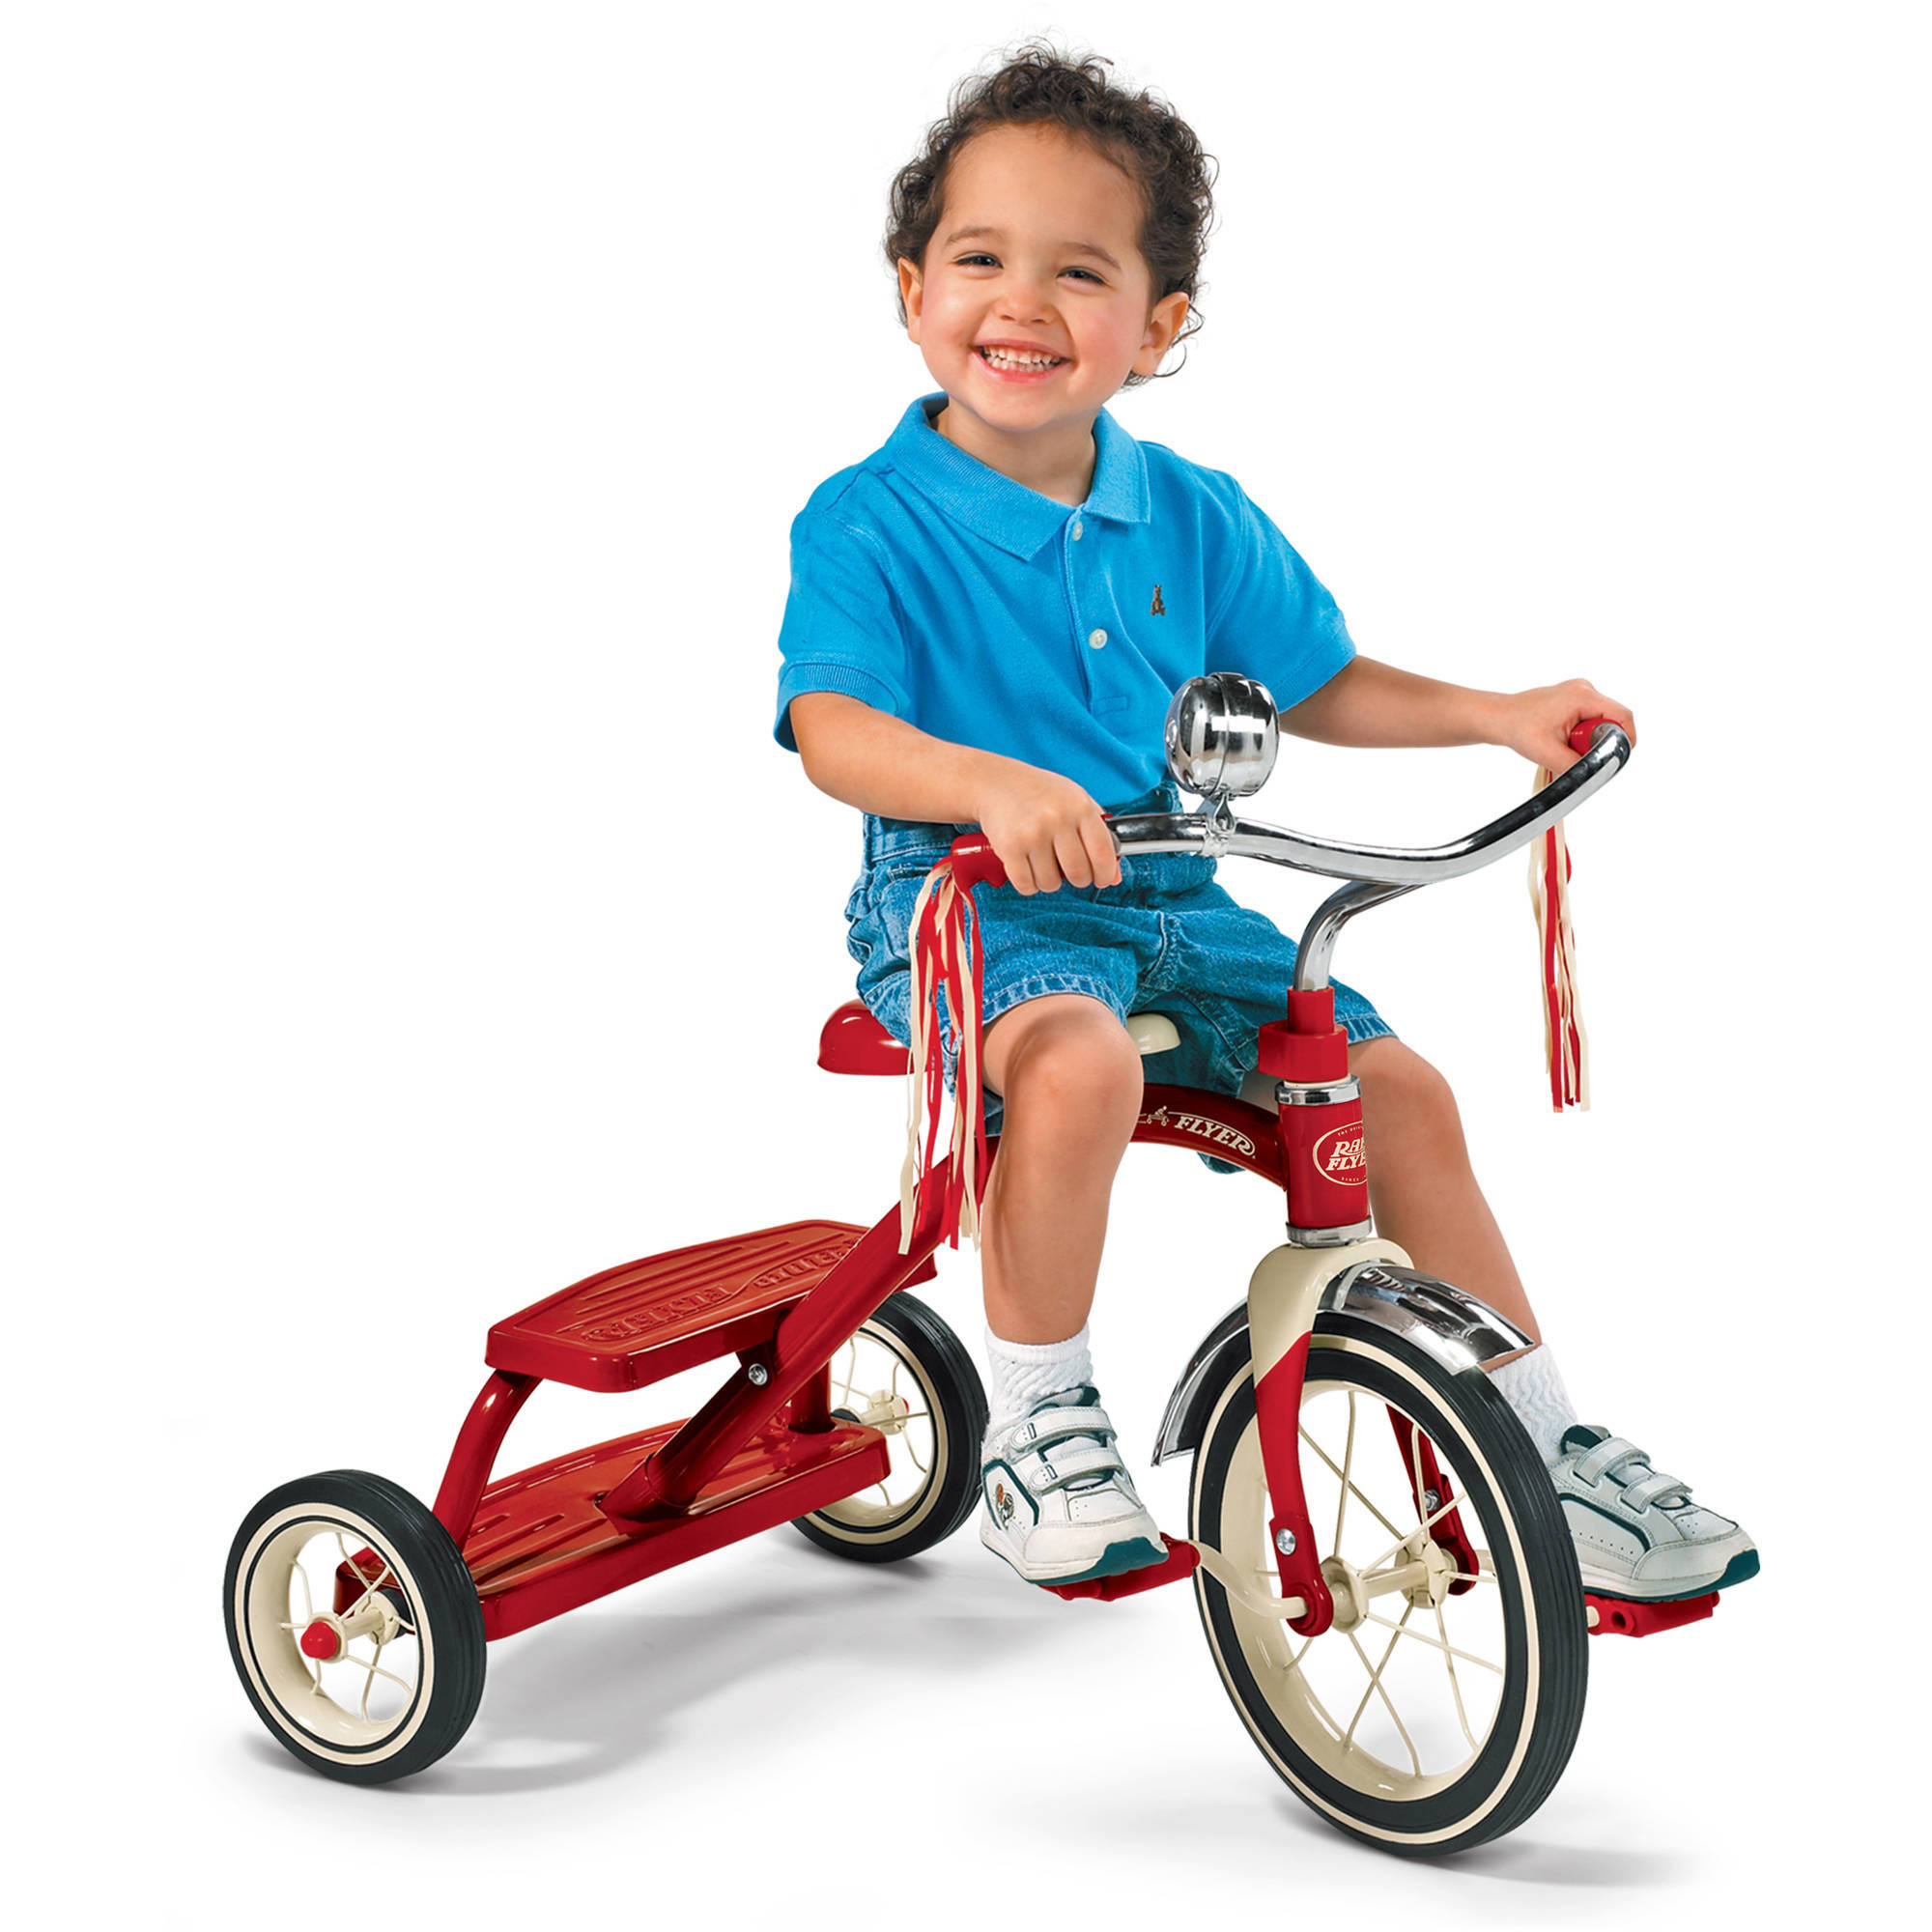 Radio Flyer Classic Red Dual-Deck Tricycle